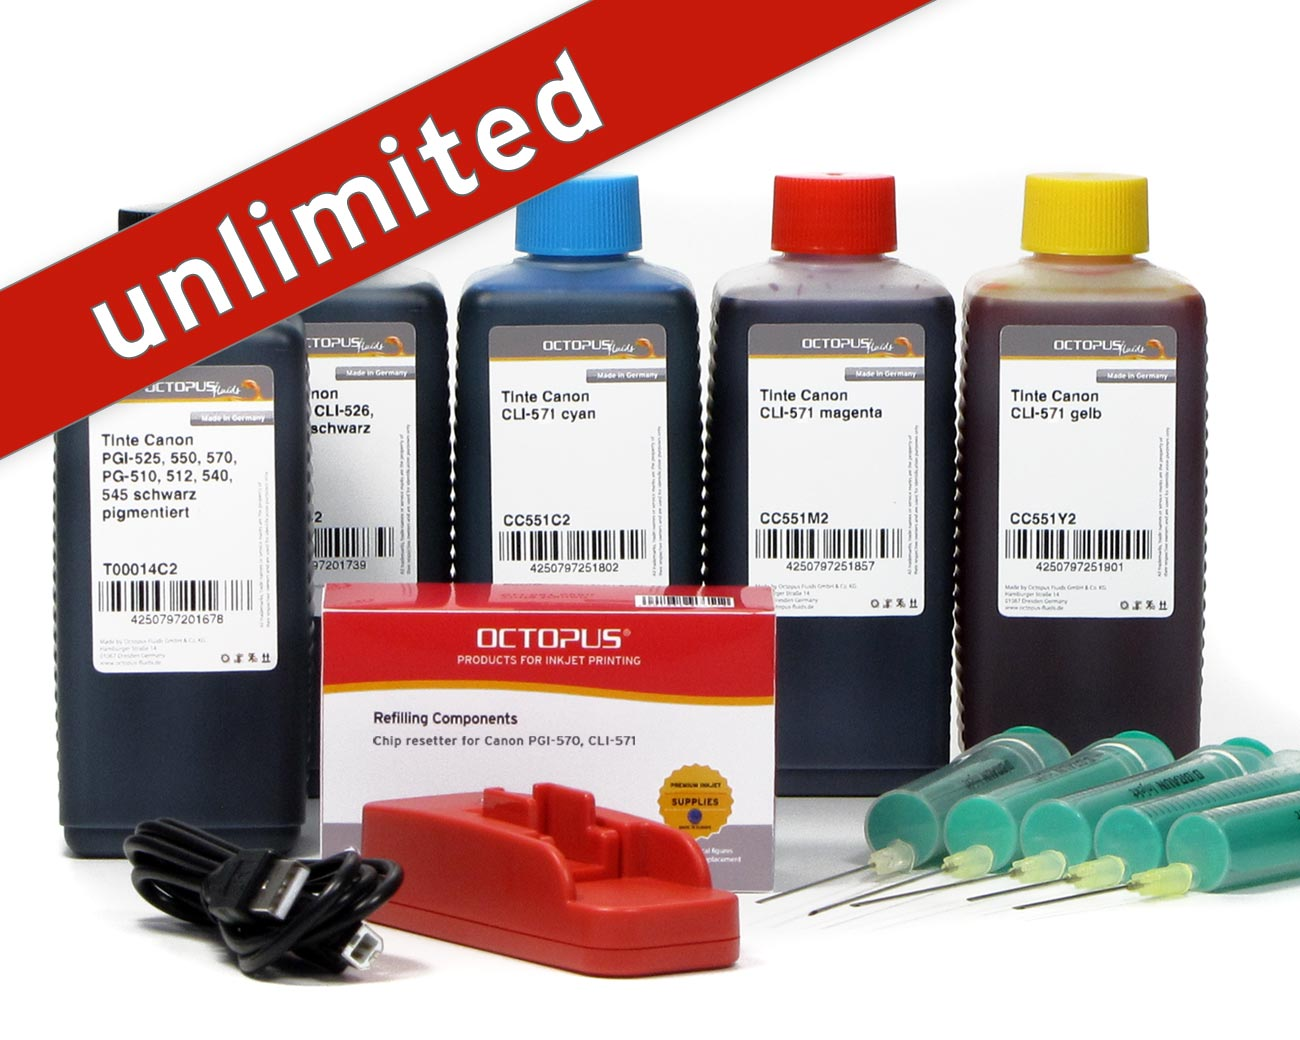 Set with chip resetter for Canon PGI-570, CLI-571 inkjet cartridges and 5x refill ink